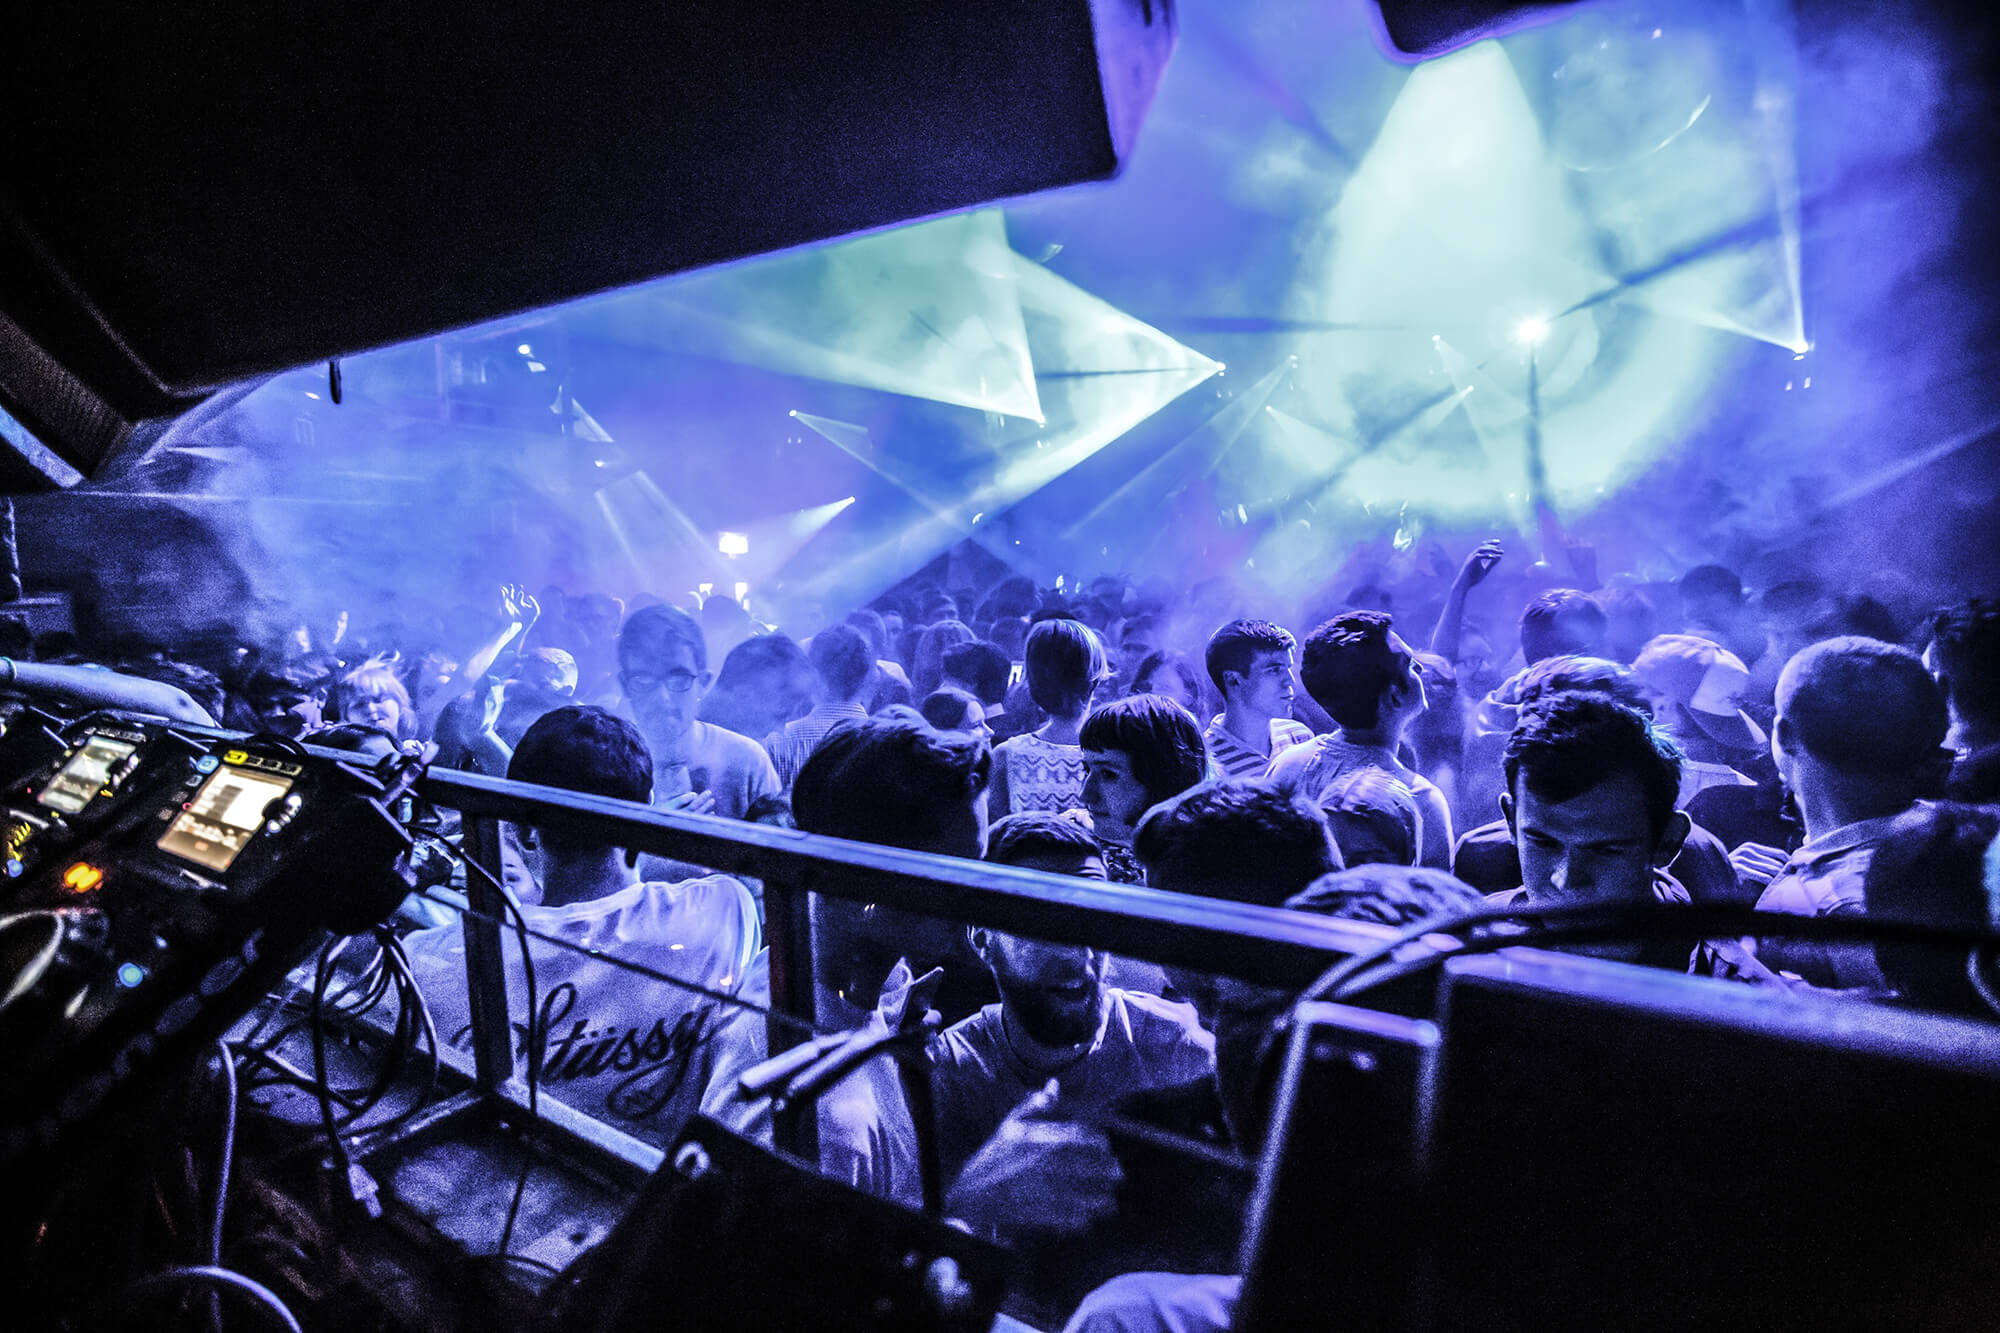 Student Music Venues - Fabric